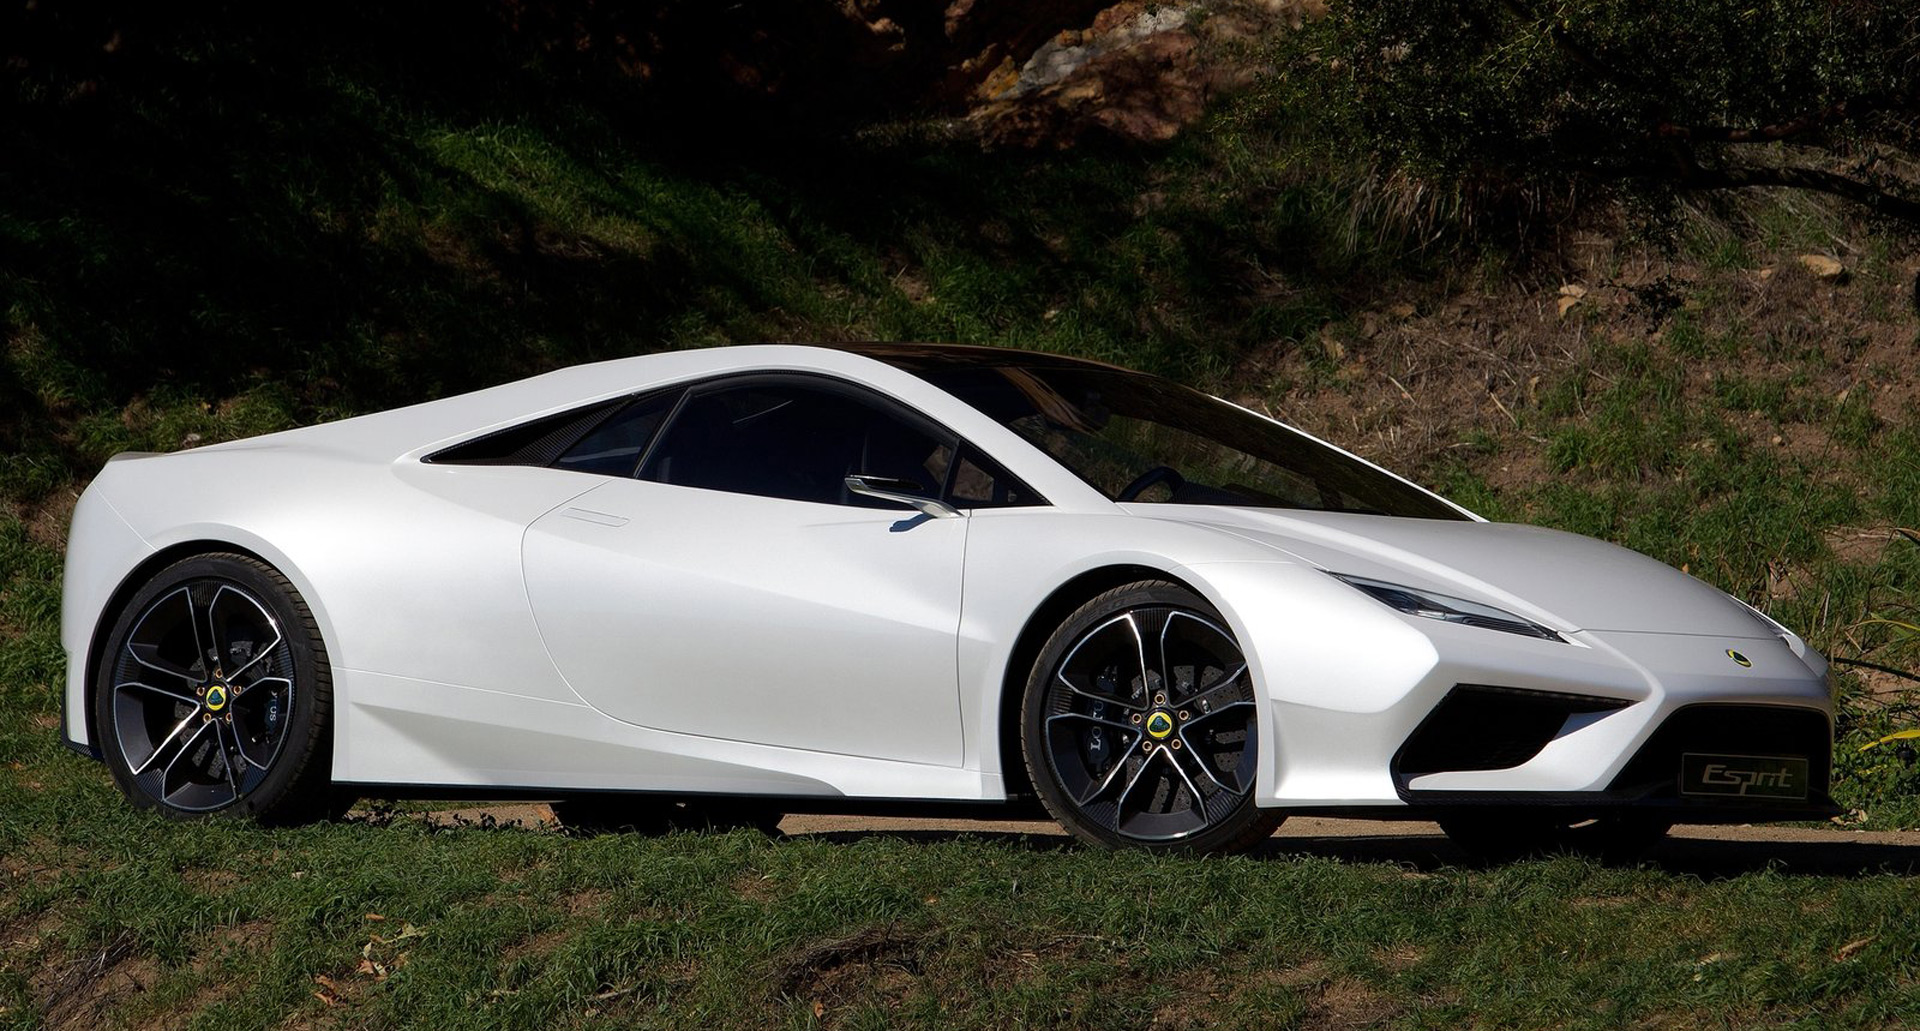 2020 Lotus Esprit Specs and Review